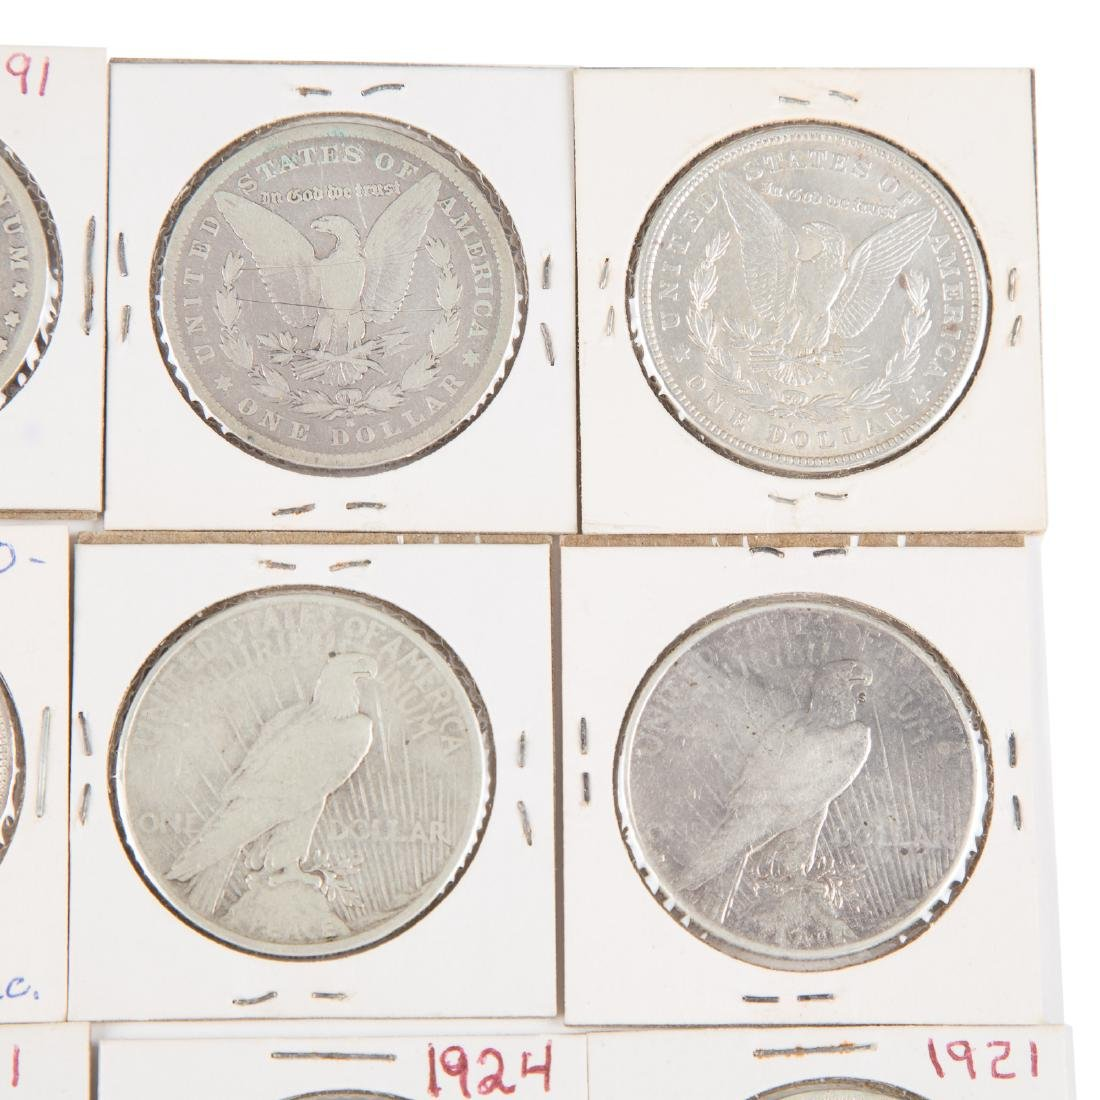 [US] 33 Morgan and Peace Silver Dollars - 5